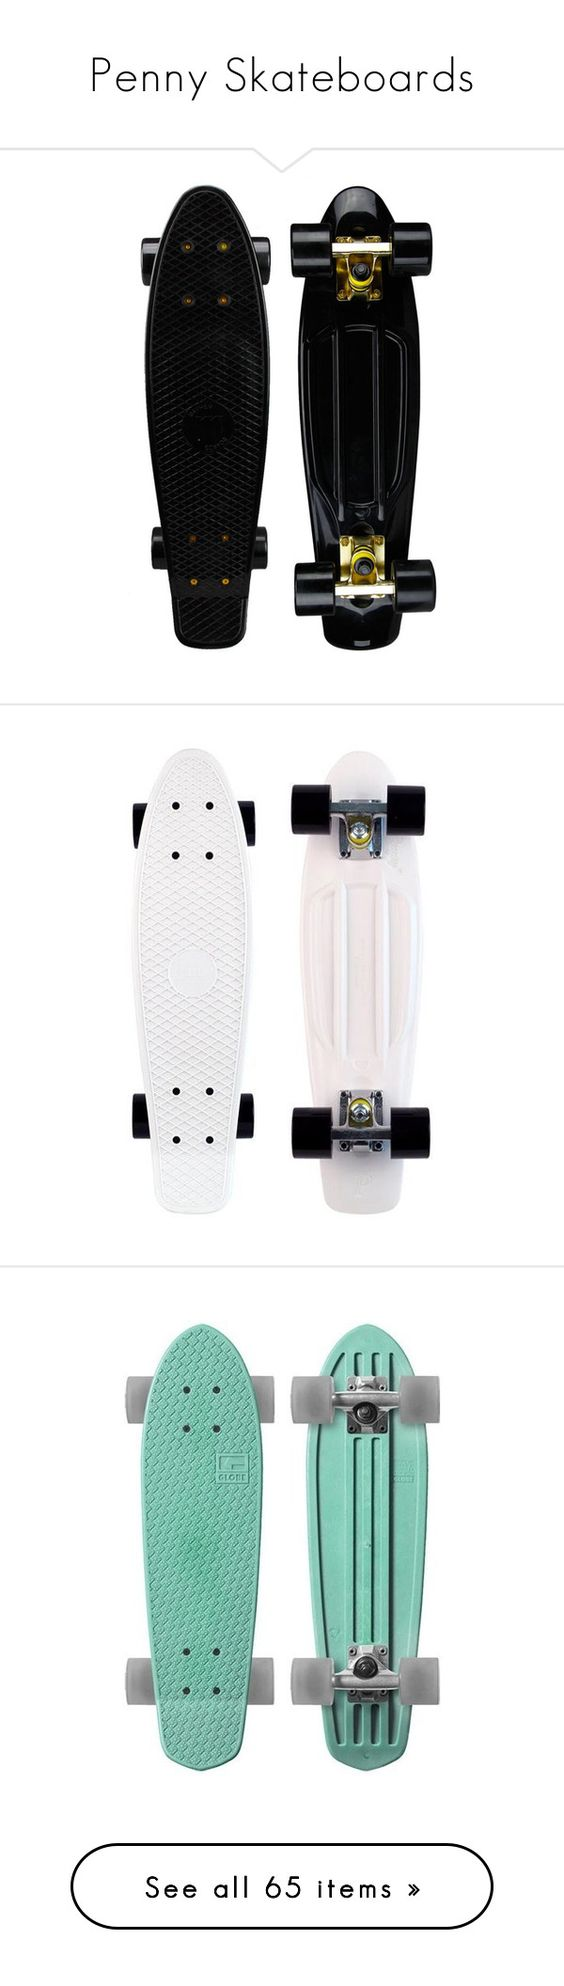 """""""Penny Skateboards"""" by janettetang ❤ liked on Polyvore featuring fillers, skateboards, accessories, black, skate, misc, backgrounds, penny boards, other and skateboard"""